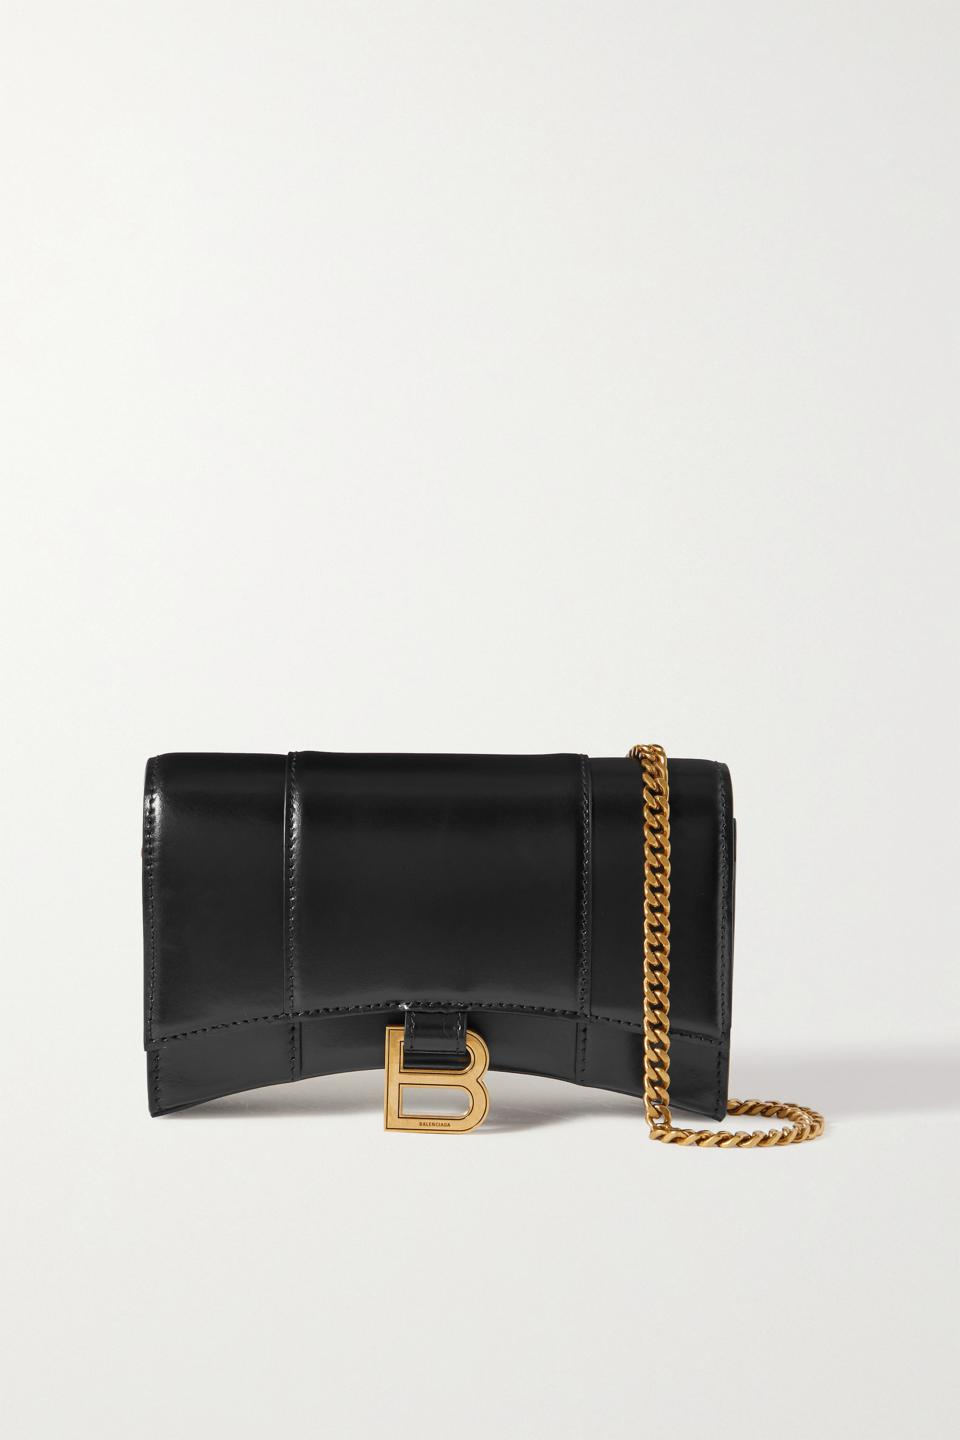 Black Hourglass leather shoulder bag